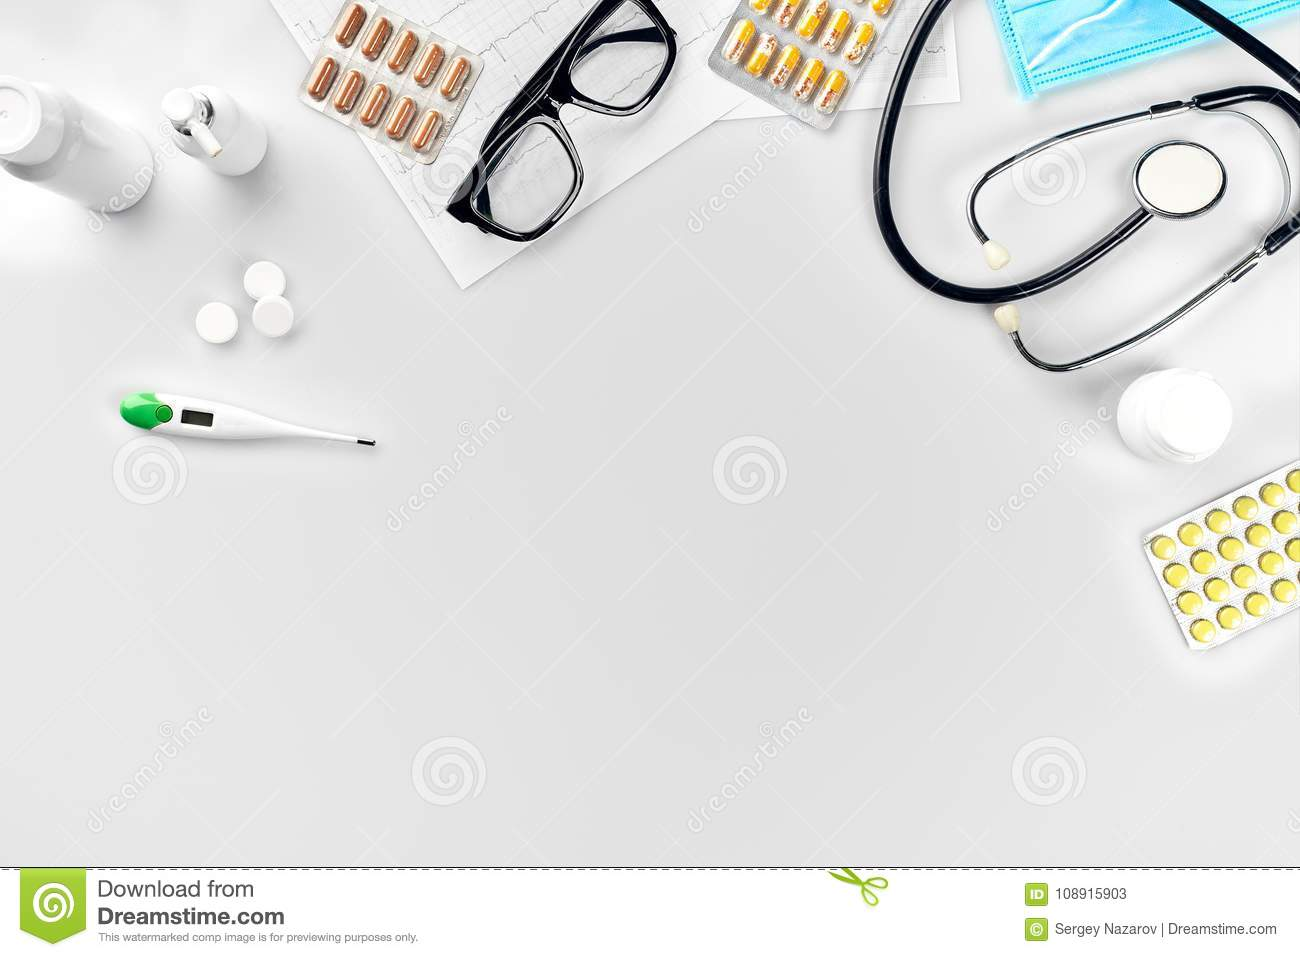 Doctor`s office desk with medical documents, charts, eyeglasses and stethoscope. Top view. Copy space